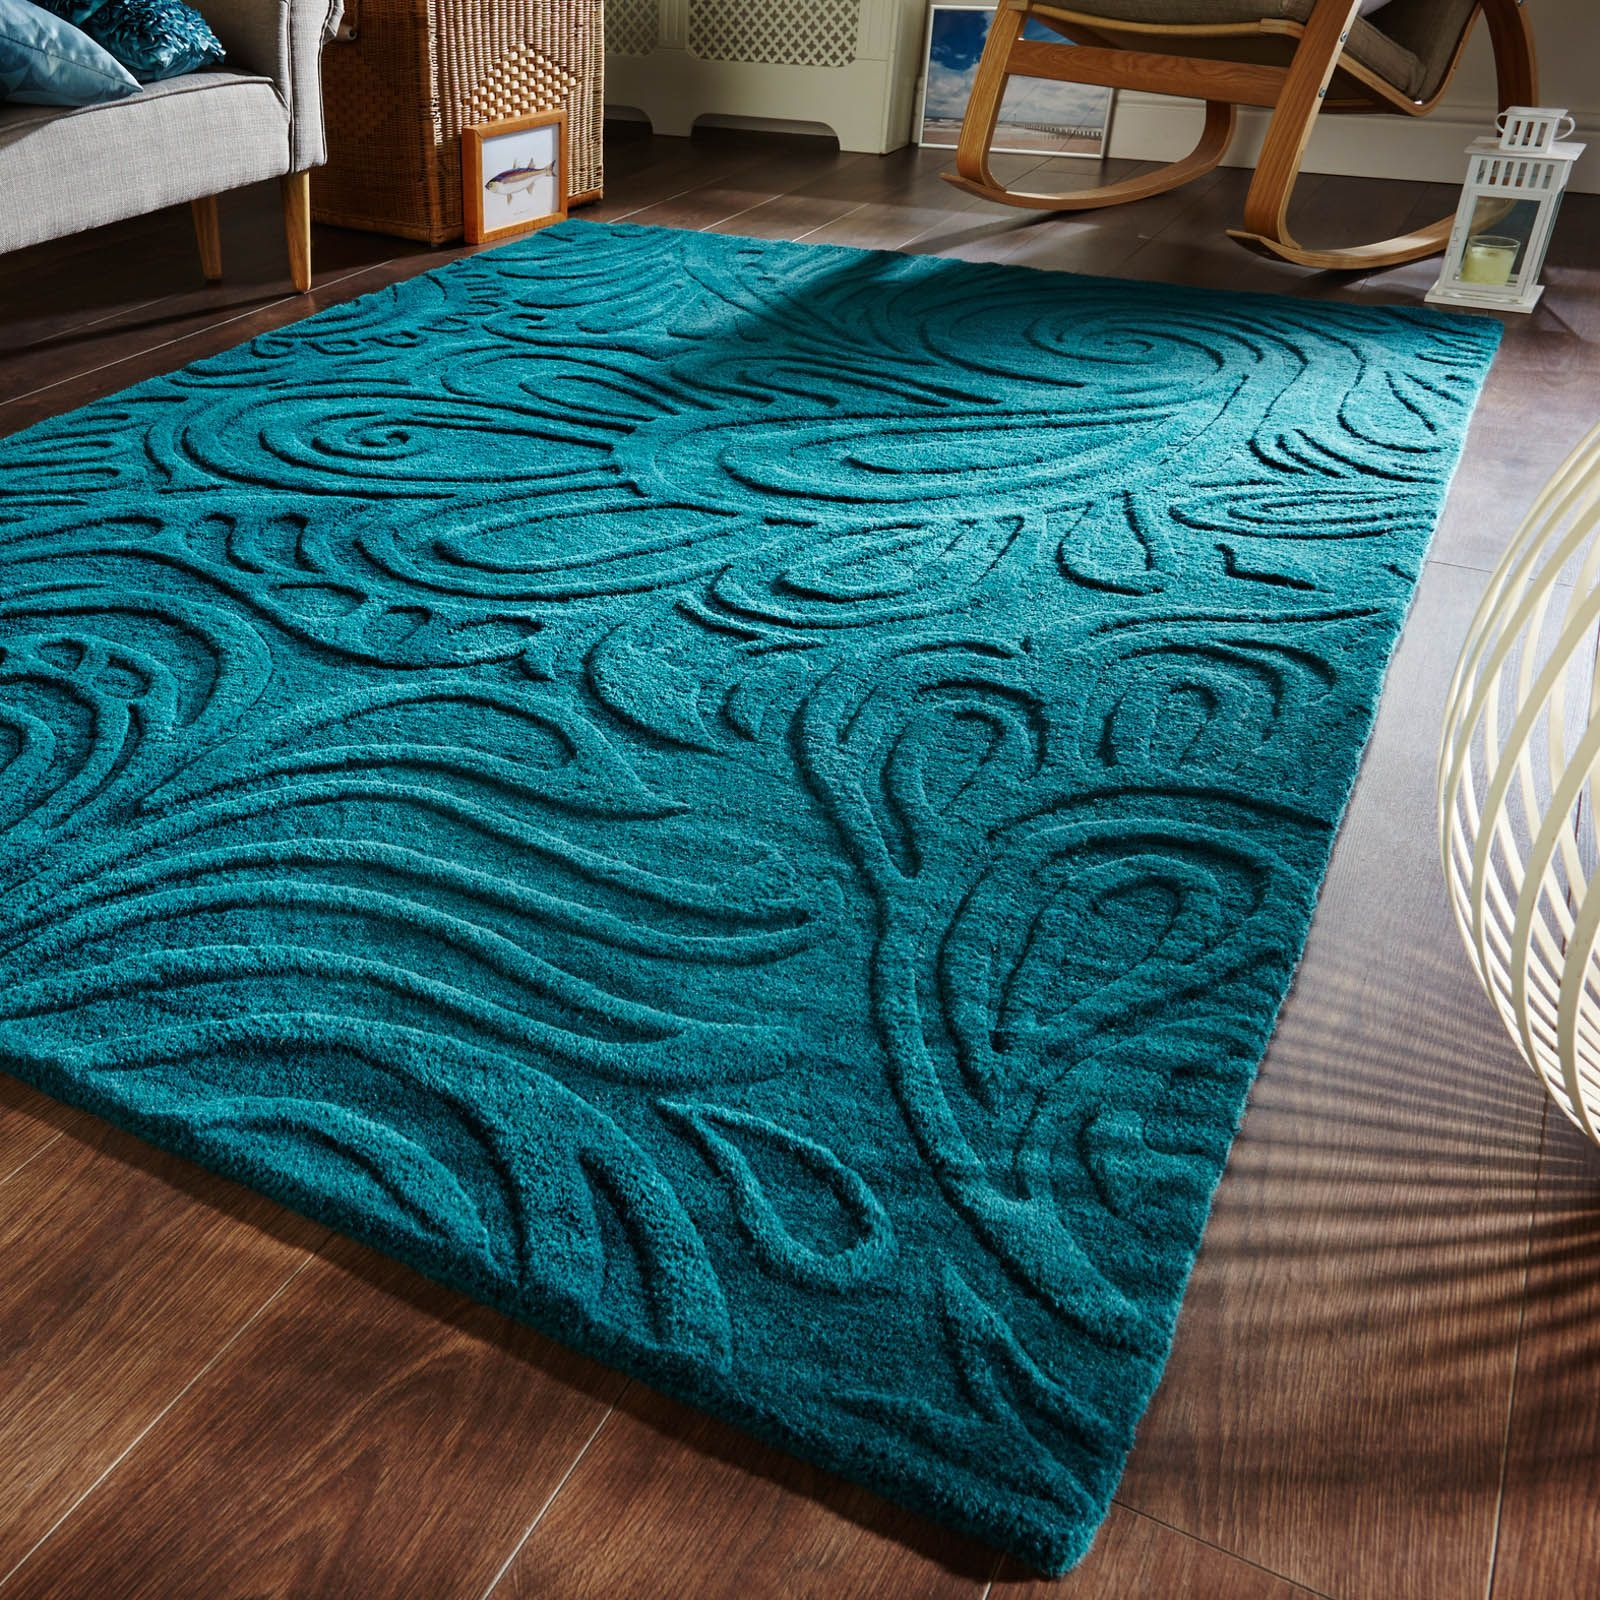 Teal Rugs Matching Color Ideas Teal Rug Living Room Teal Living Rooms Teal Rug Teal carpet living room